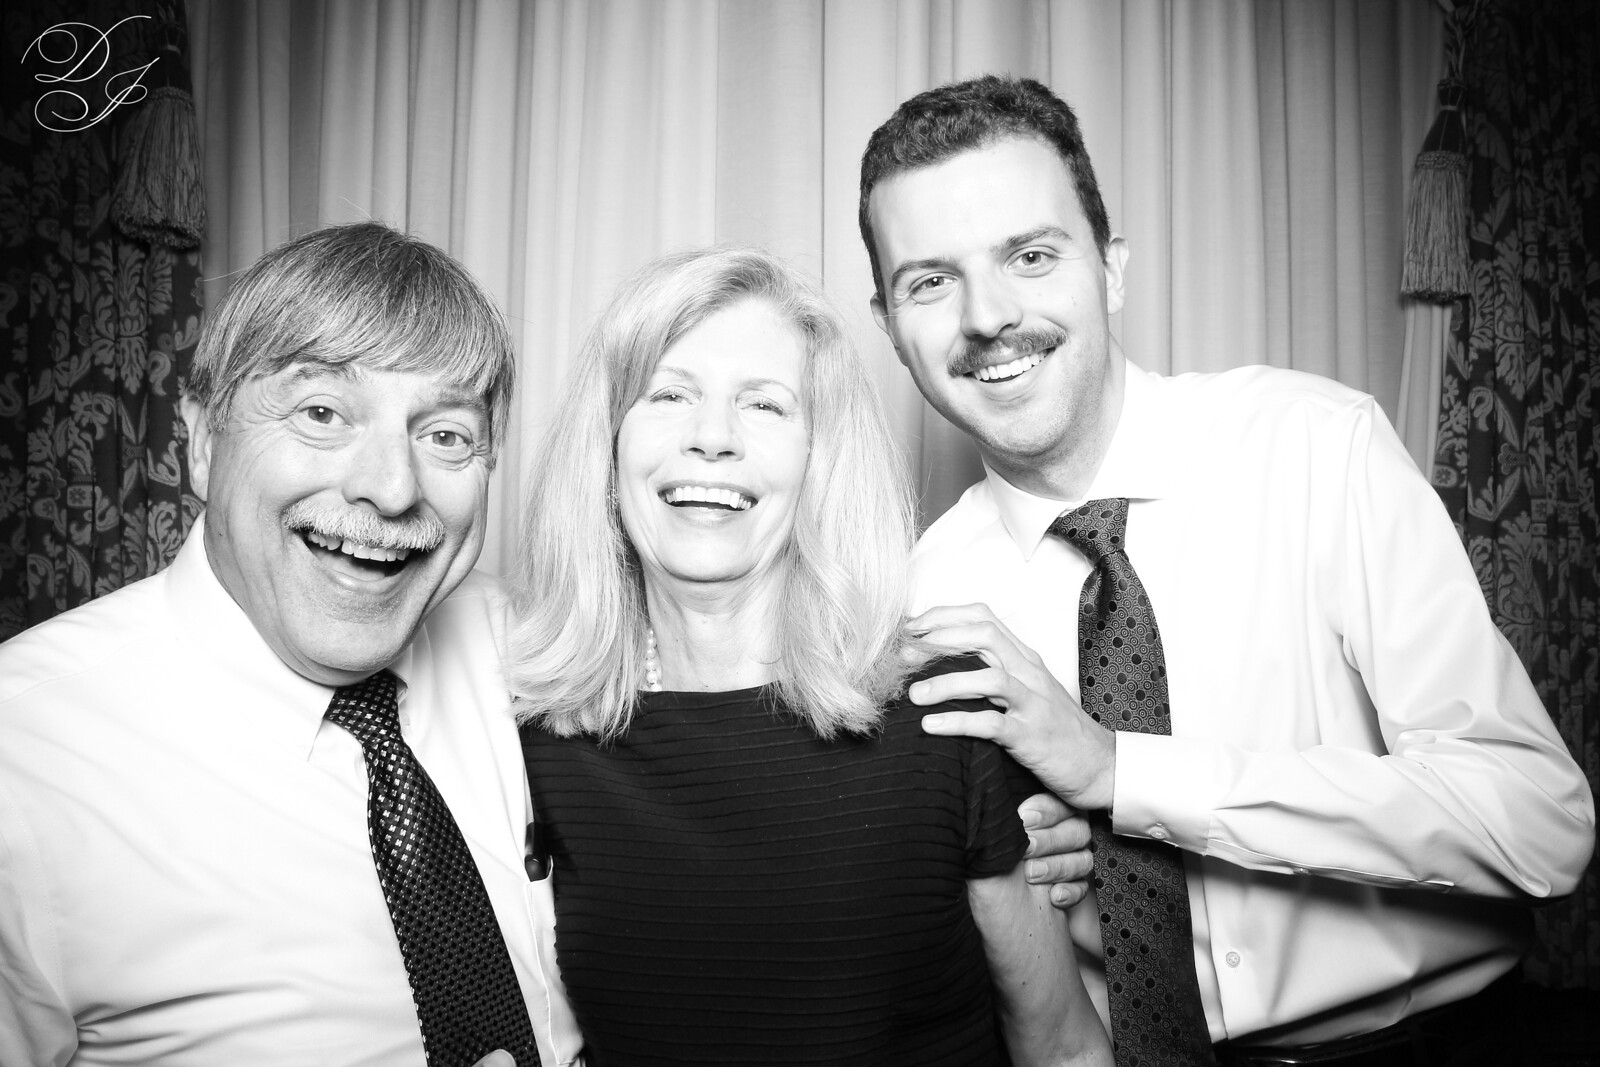 Chicago_Vintage_Wedding_Photobooth_Union_League_Club_26.jpg